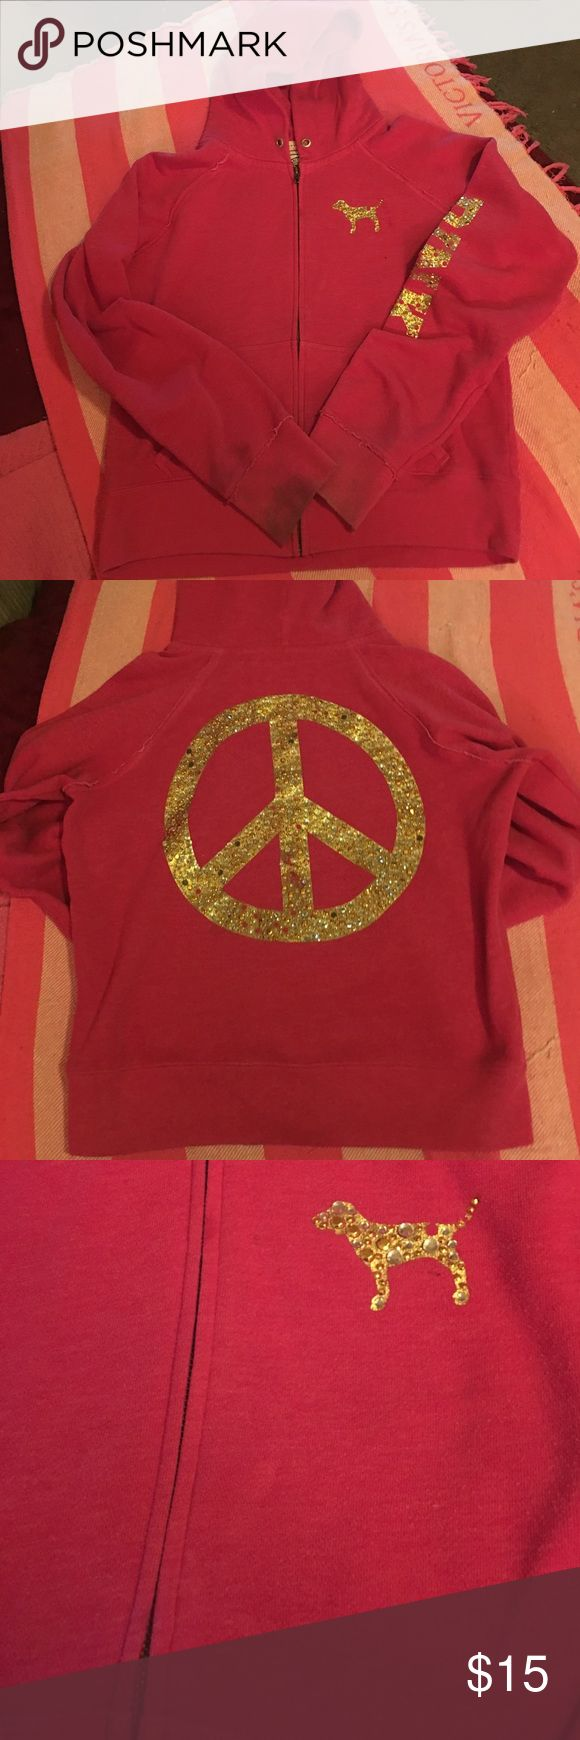 Victoria's Secret Pink hoodie sz L Pre owned VS Pink full zip hoodie sz L. This hoodie matches the sweats I have listed, it's missing the drawstring, it has a dog on front (missing one rhinestone) and a large peace sign on back (missing a few rhinestones) and says Pink down the arm that's missing some rhinestones too, the cuffs are stained it may come out or get lighter with stain remover I haven't really tried, I washed it and hung it to dry so it shouldn't be set it. Light spots near dog…